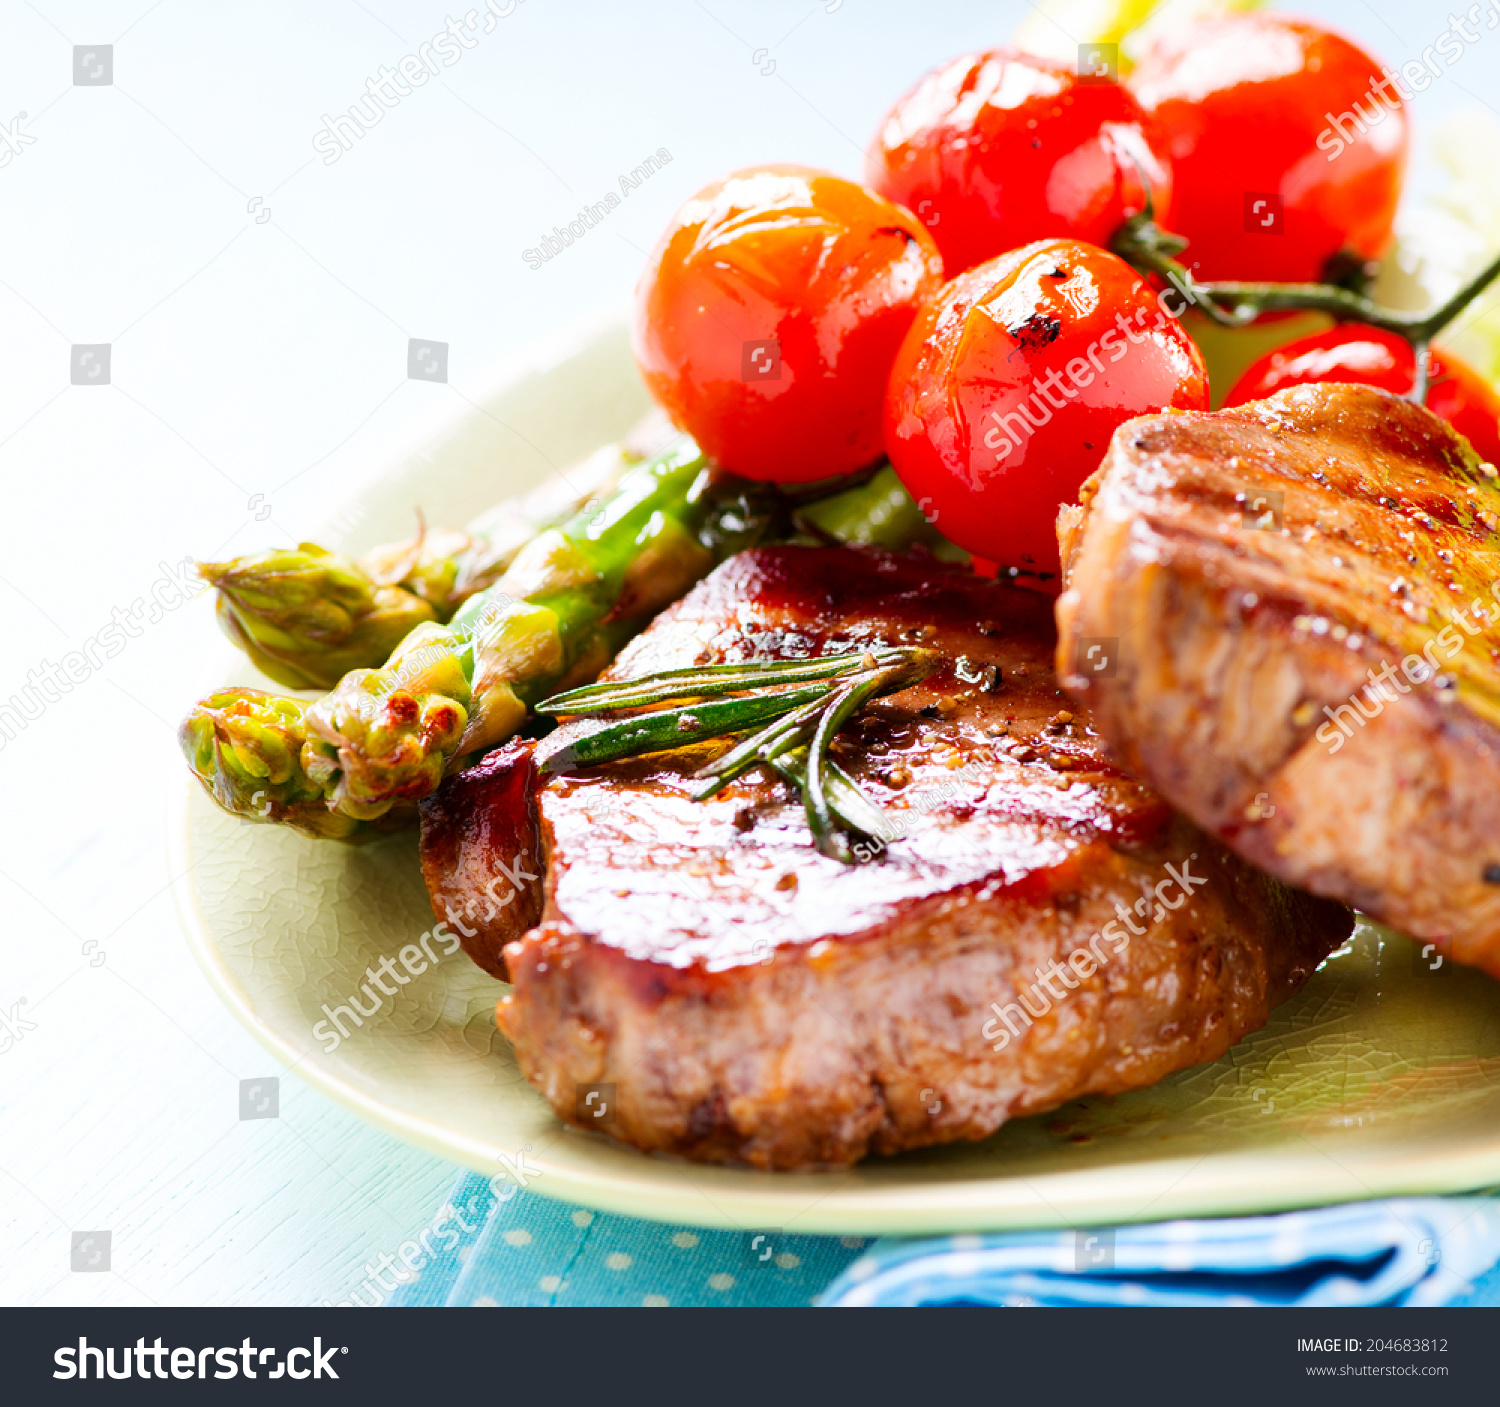 Grilled Beef Steak Meat With Asparagus And Cherry Tomato Steak Dinner Food Bbq